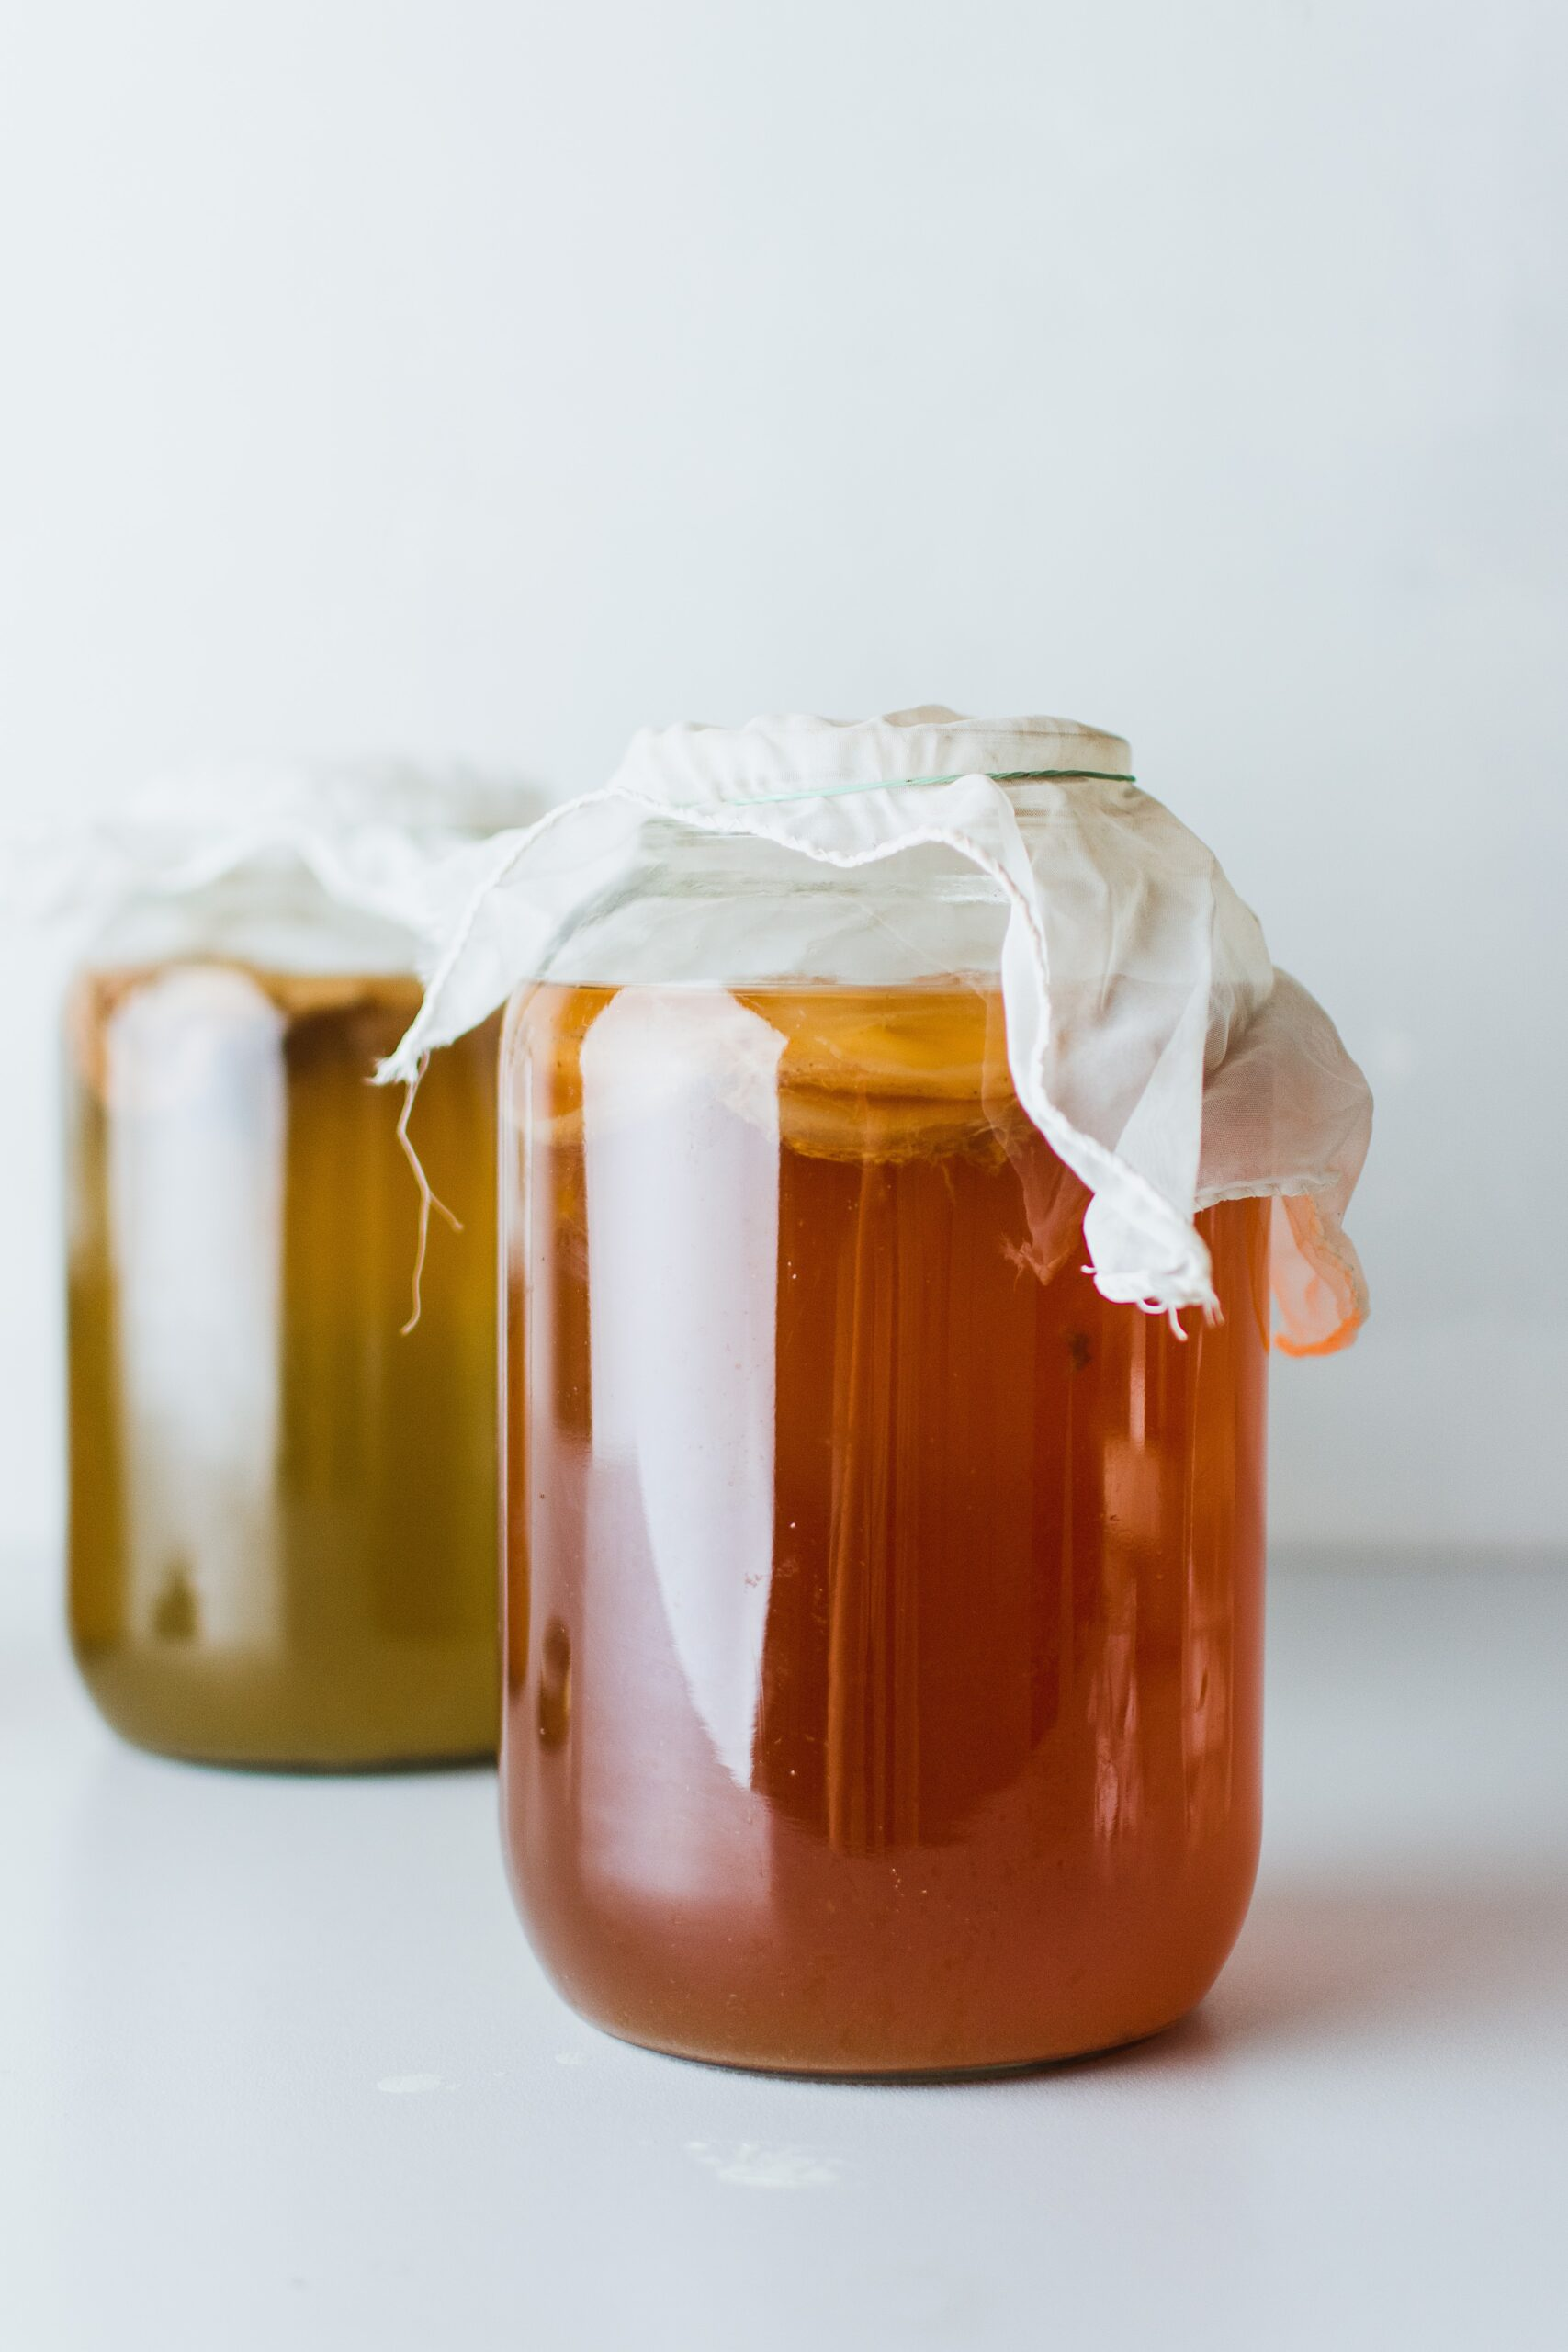 Day 41: Fermented and Cultured Foods